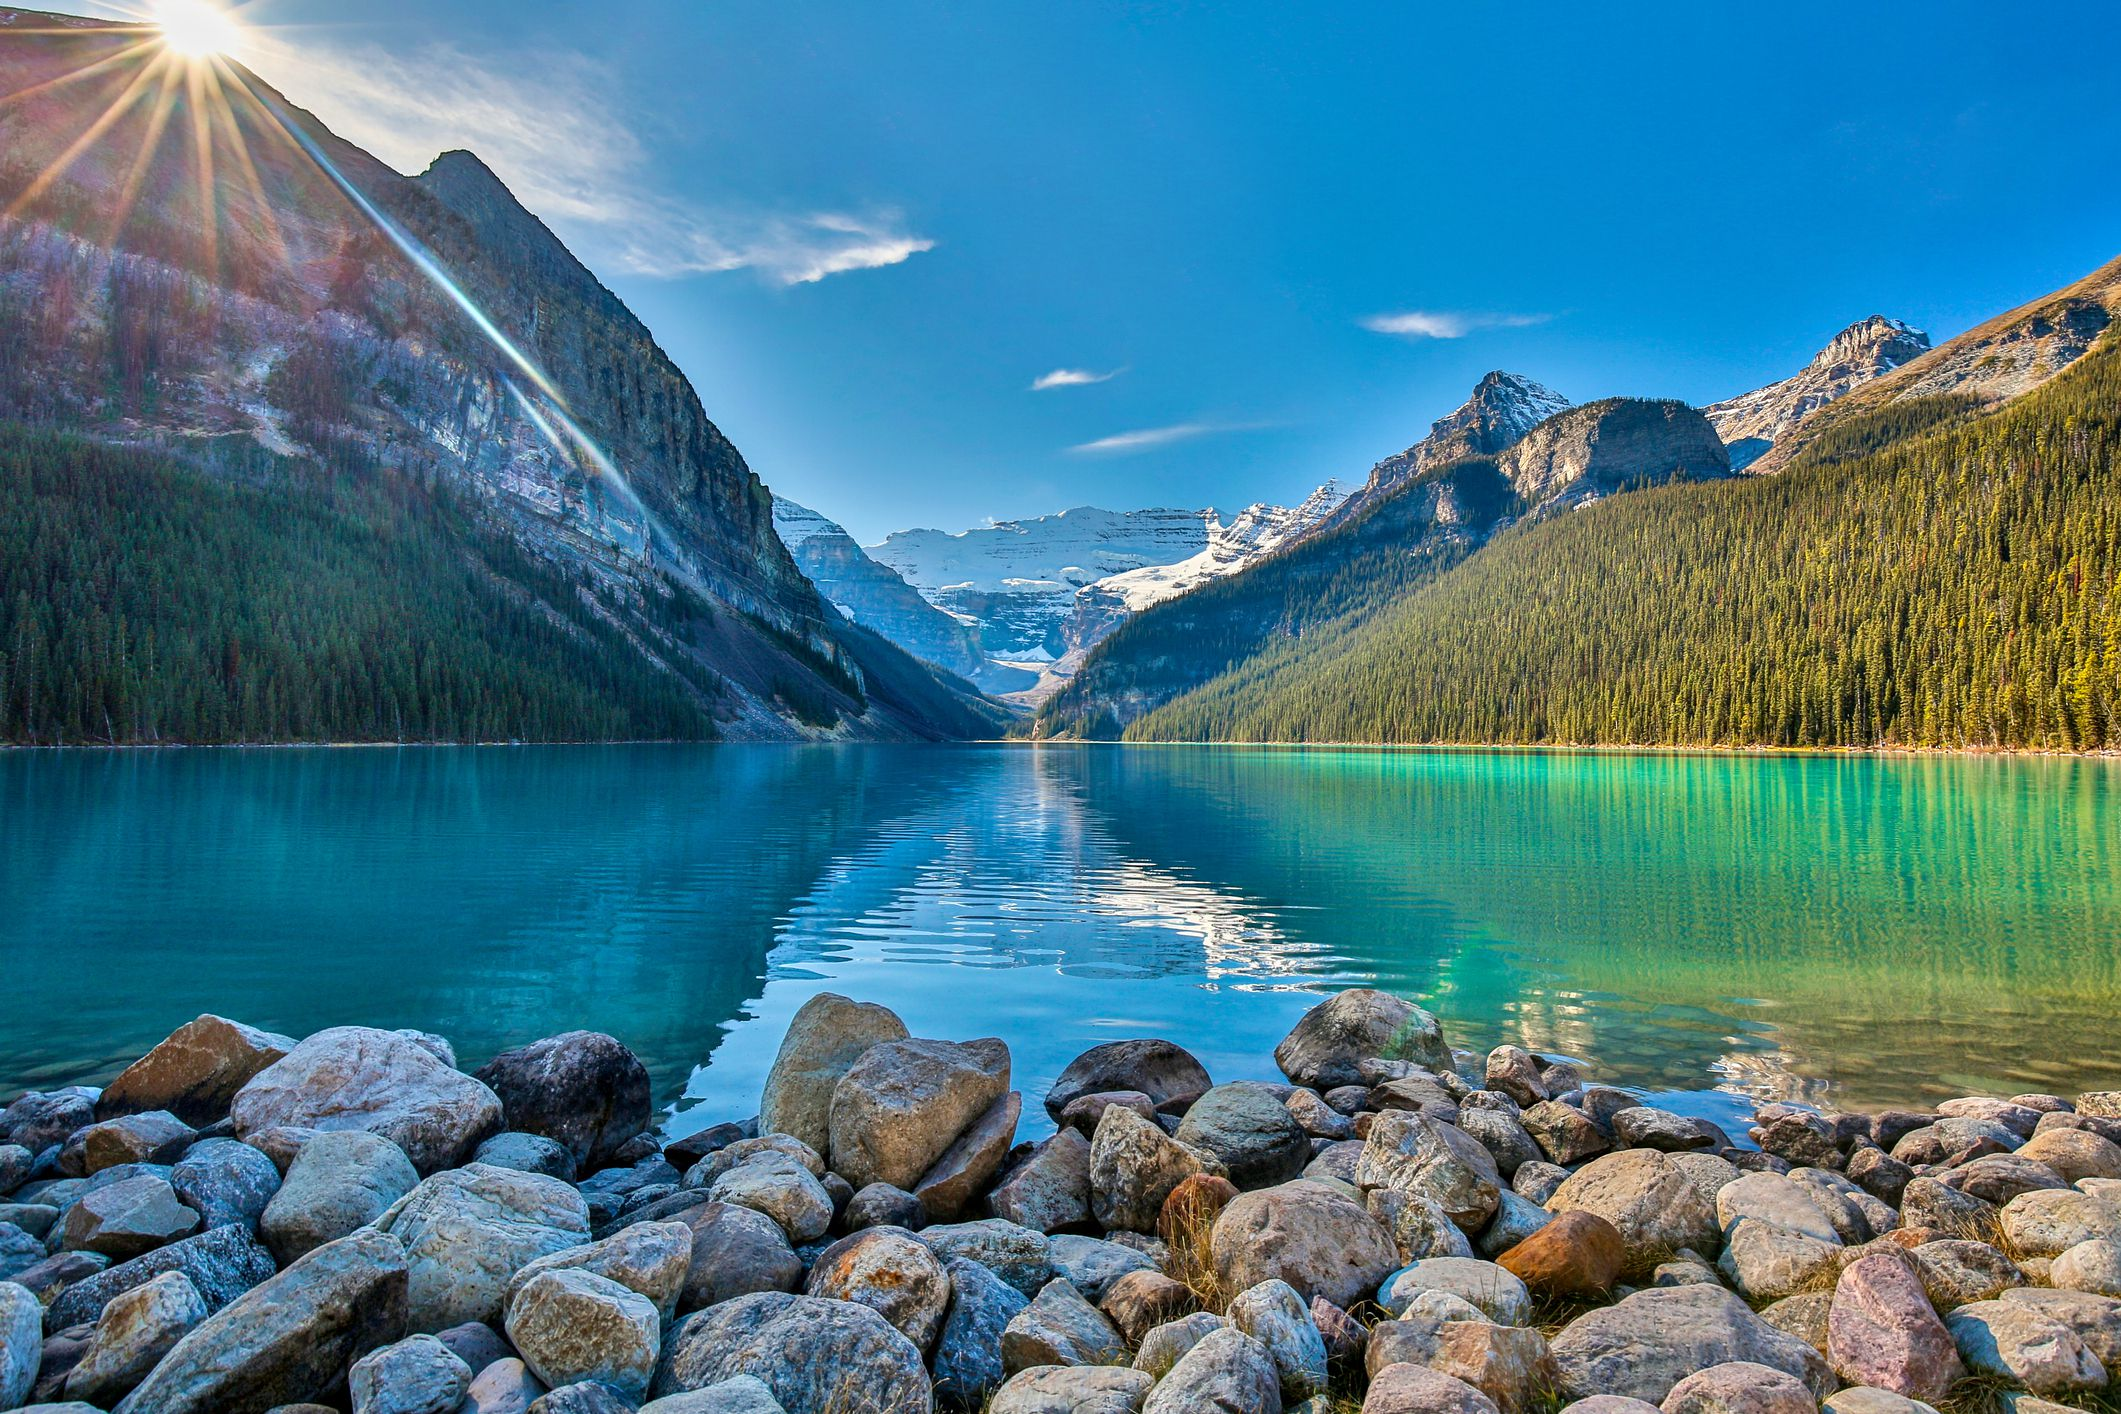 8 Adventurous Things to Do Around Banff National Park's Lake Louise